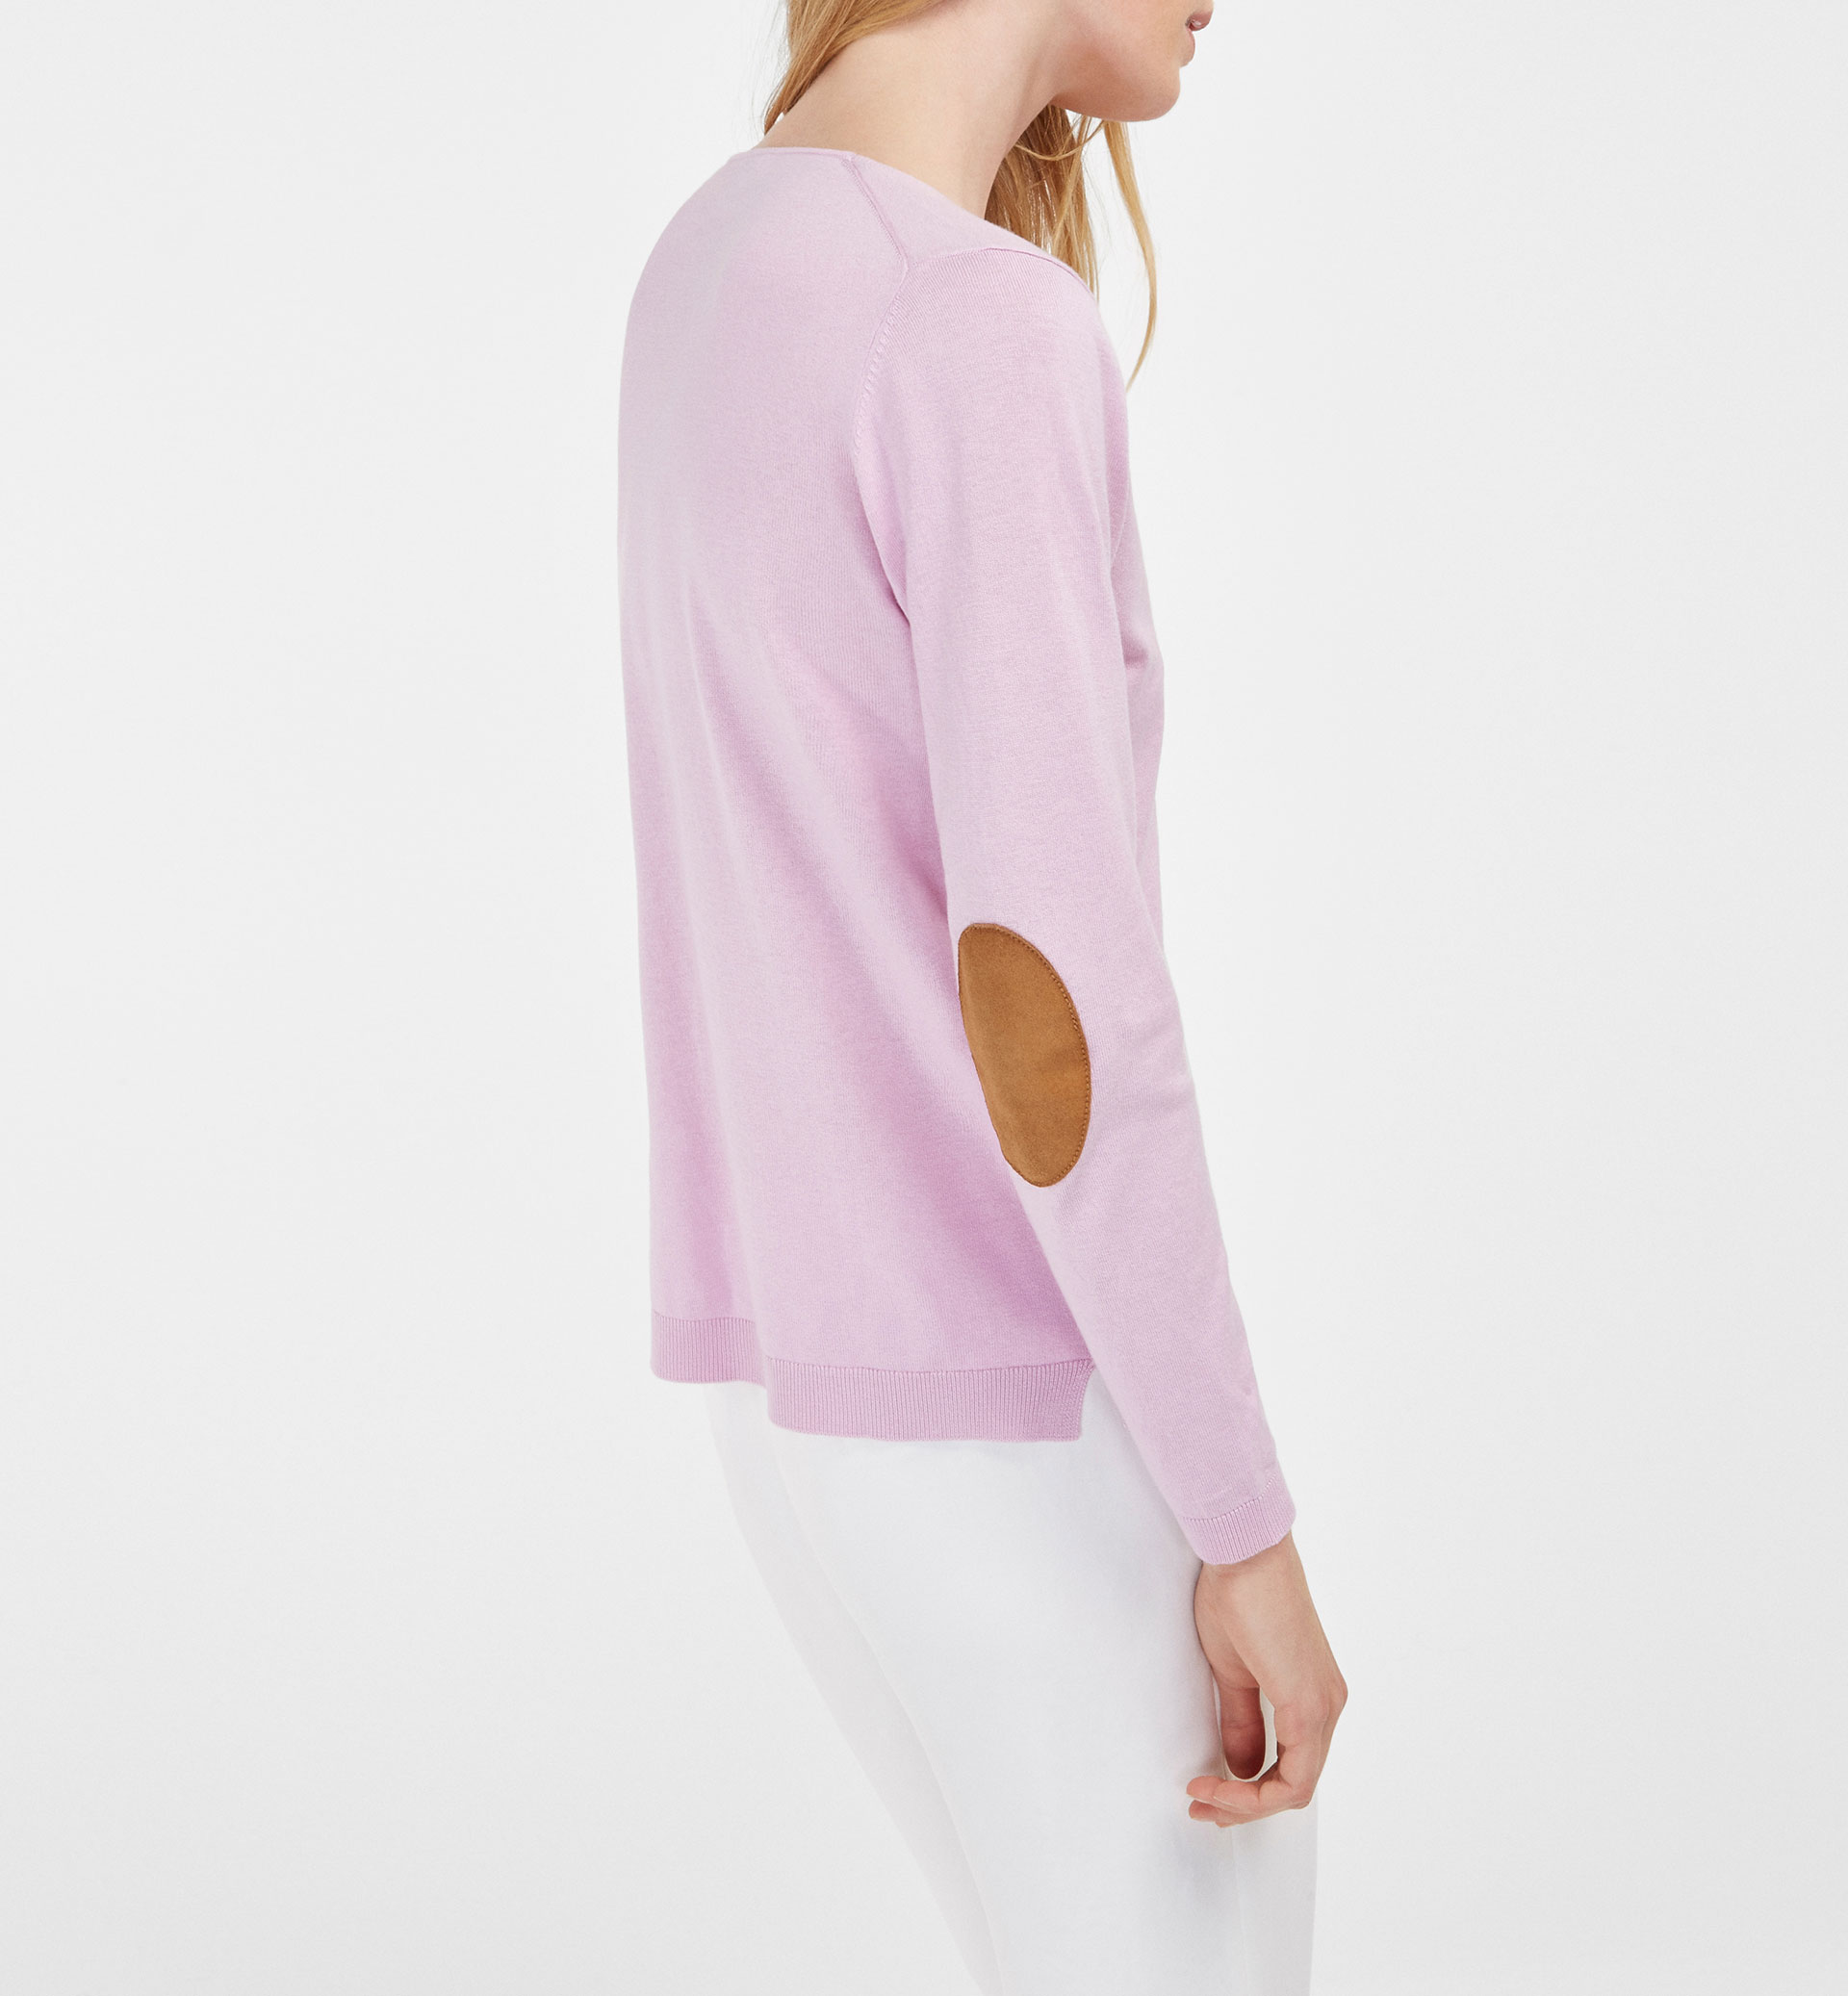 SWEATER WITH LEATHER ELBOW PATCHES